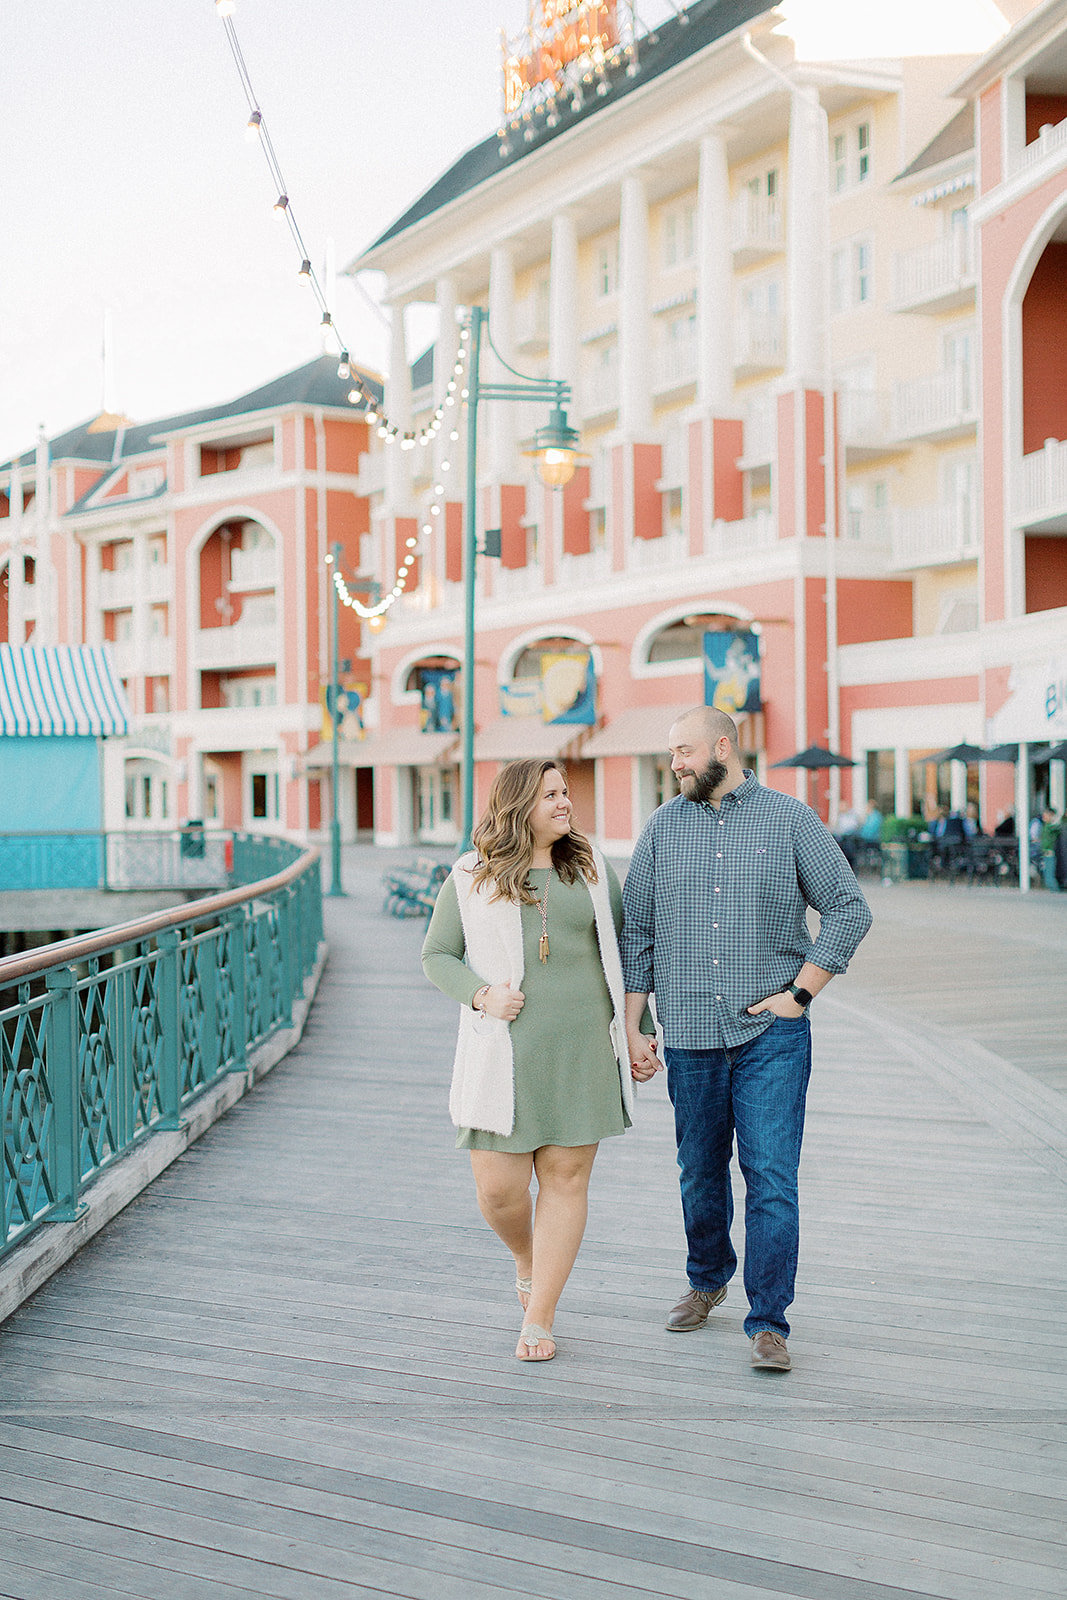 Larisa_+_Craig_Disney_Epcot_Boardwalk_Resort_Engagement_Session_Photographer_Casie_Marie_Photography-75